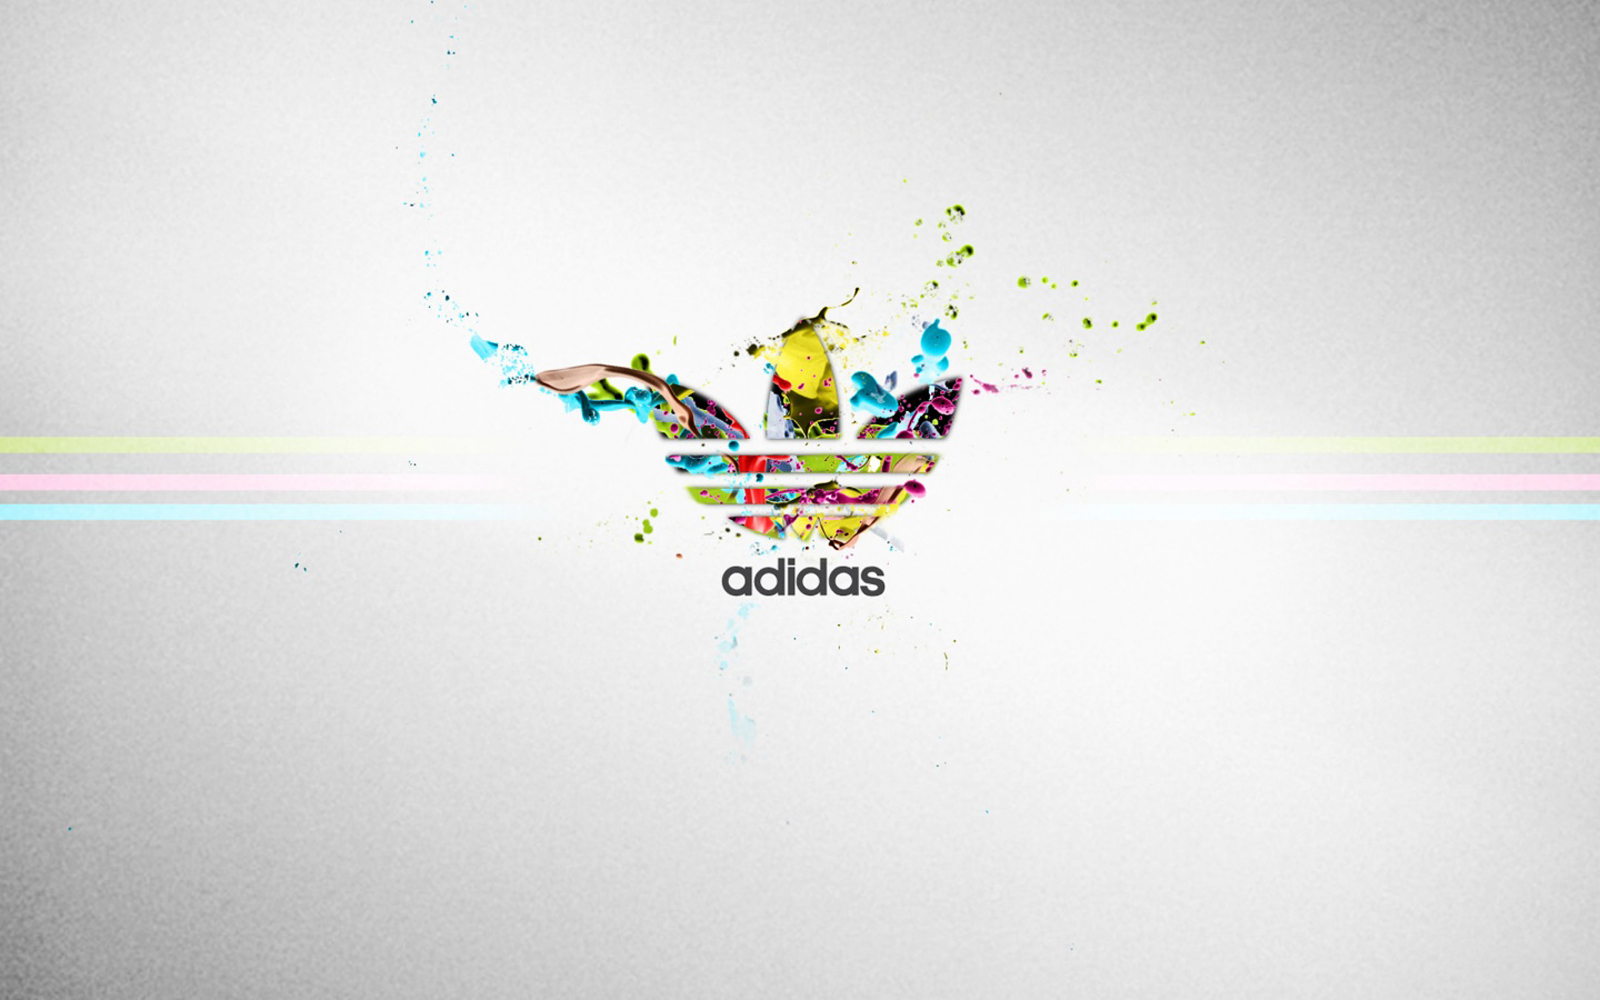 Adidas Logo HD Wallpapers HD Wallpapers Backgrounds 1600x1000